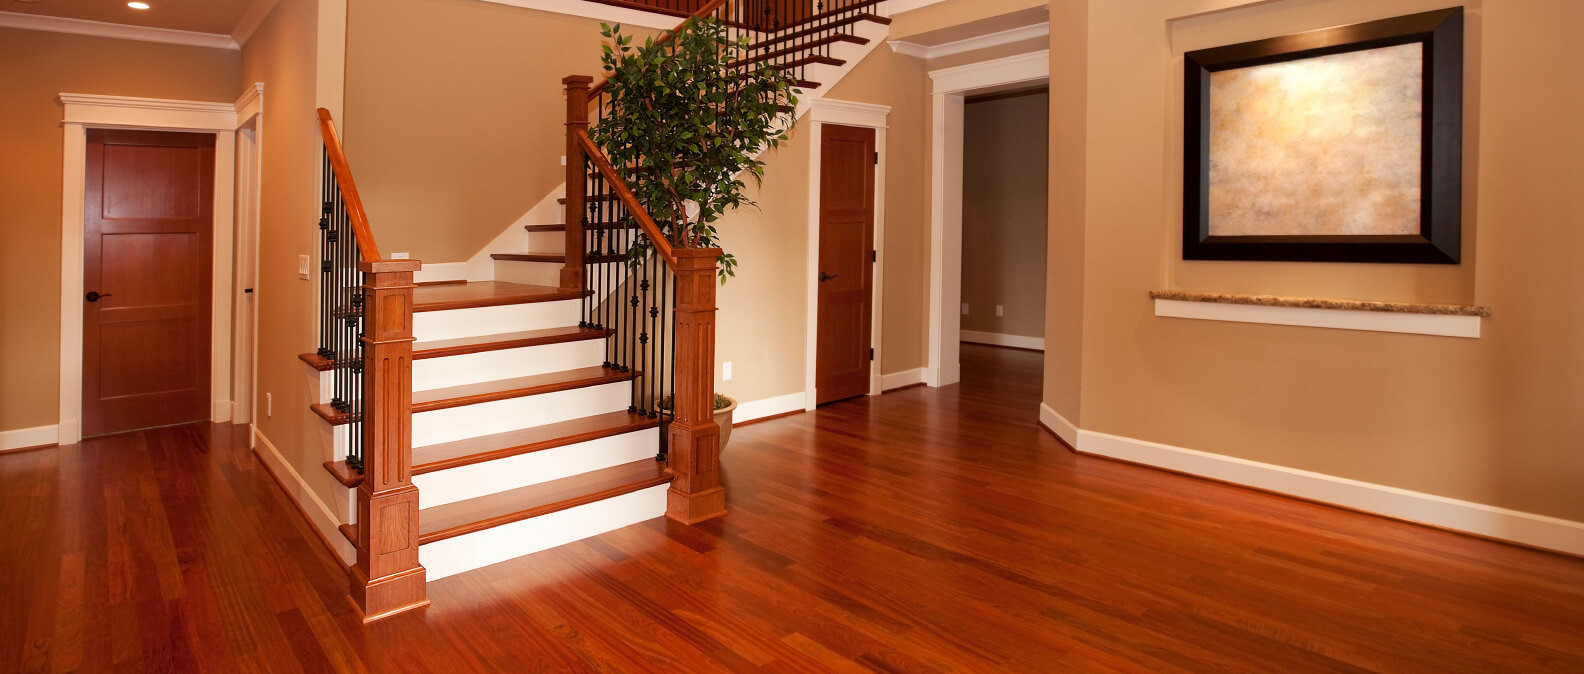 Hardwood Flooring Cost Home Depot Of Breathtaking Hardwood Flooring Pictures Beautiful Floors are Here Only for Breathtaking Hardwood Flooring Picture Floor Installation Laminate Milton Oakville Cost Near Me toronto Lowe Home Depot